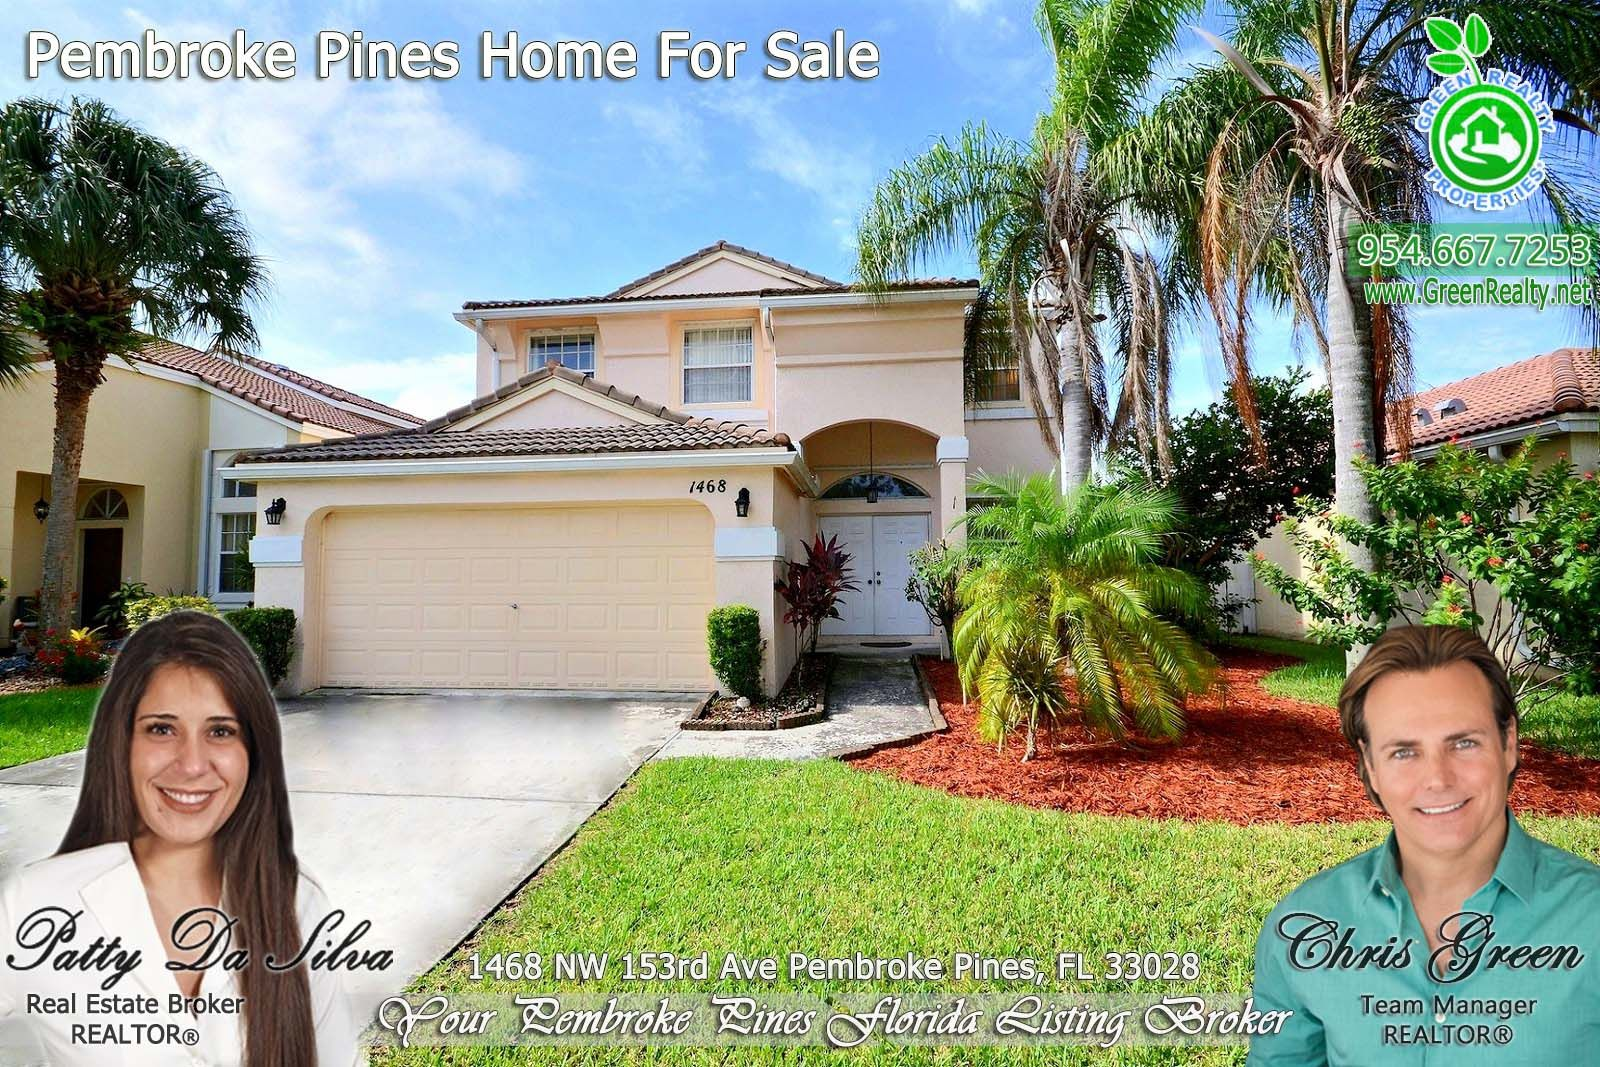 1468 Nw 153rd Ave Pembroke Pines Fl 33028 Mls A10553050 Green Realty Properties Pembroke Pines House Beds Pembroke